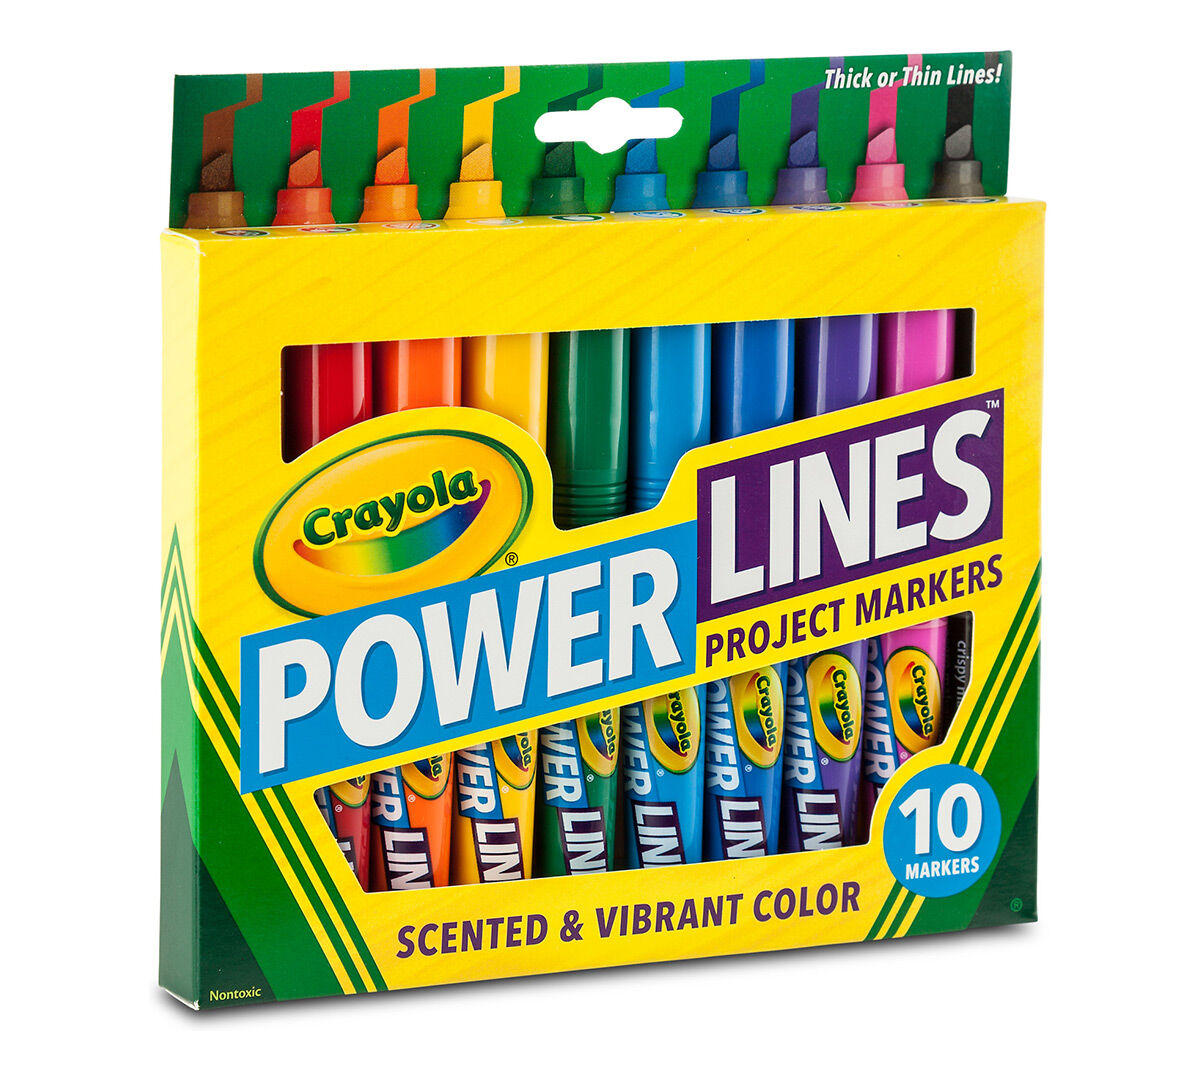 Power Lines Project Markers with Scents